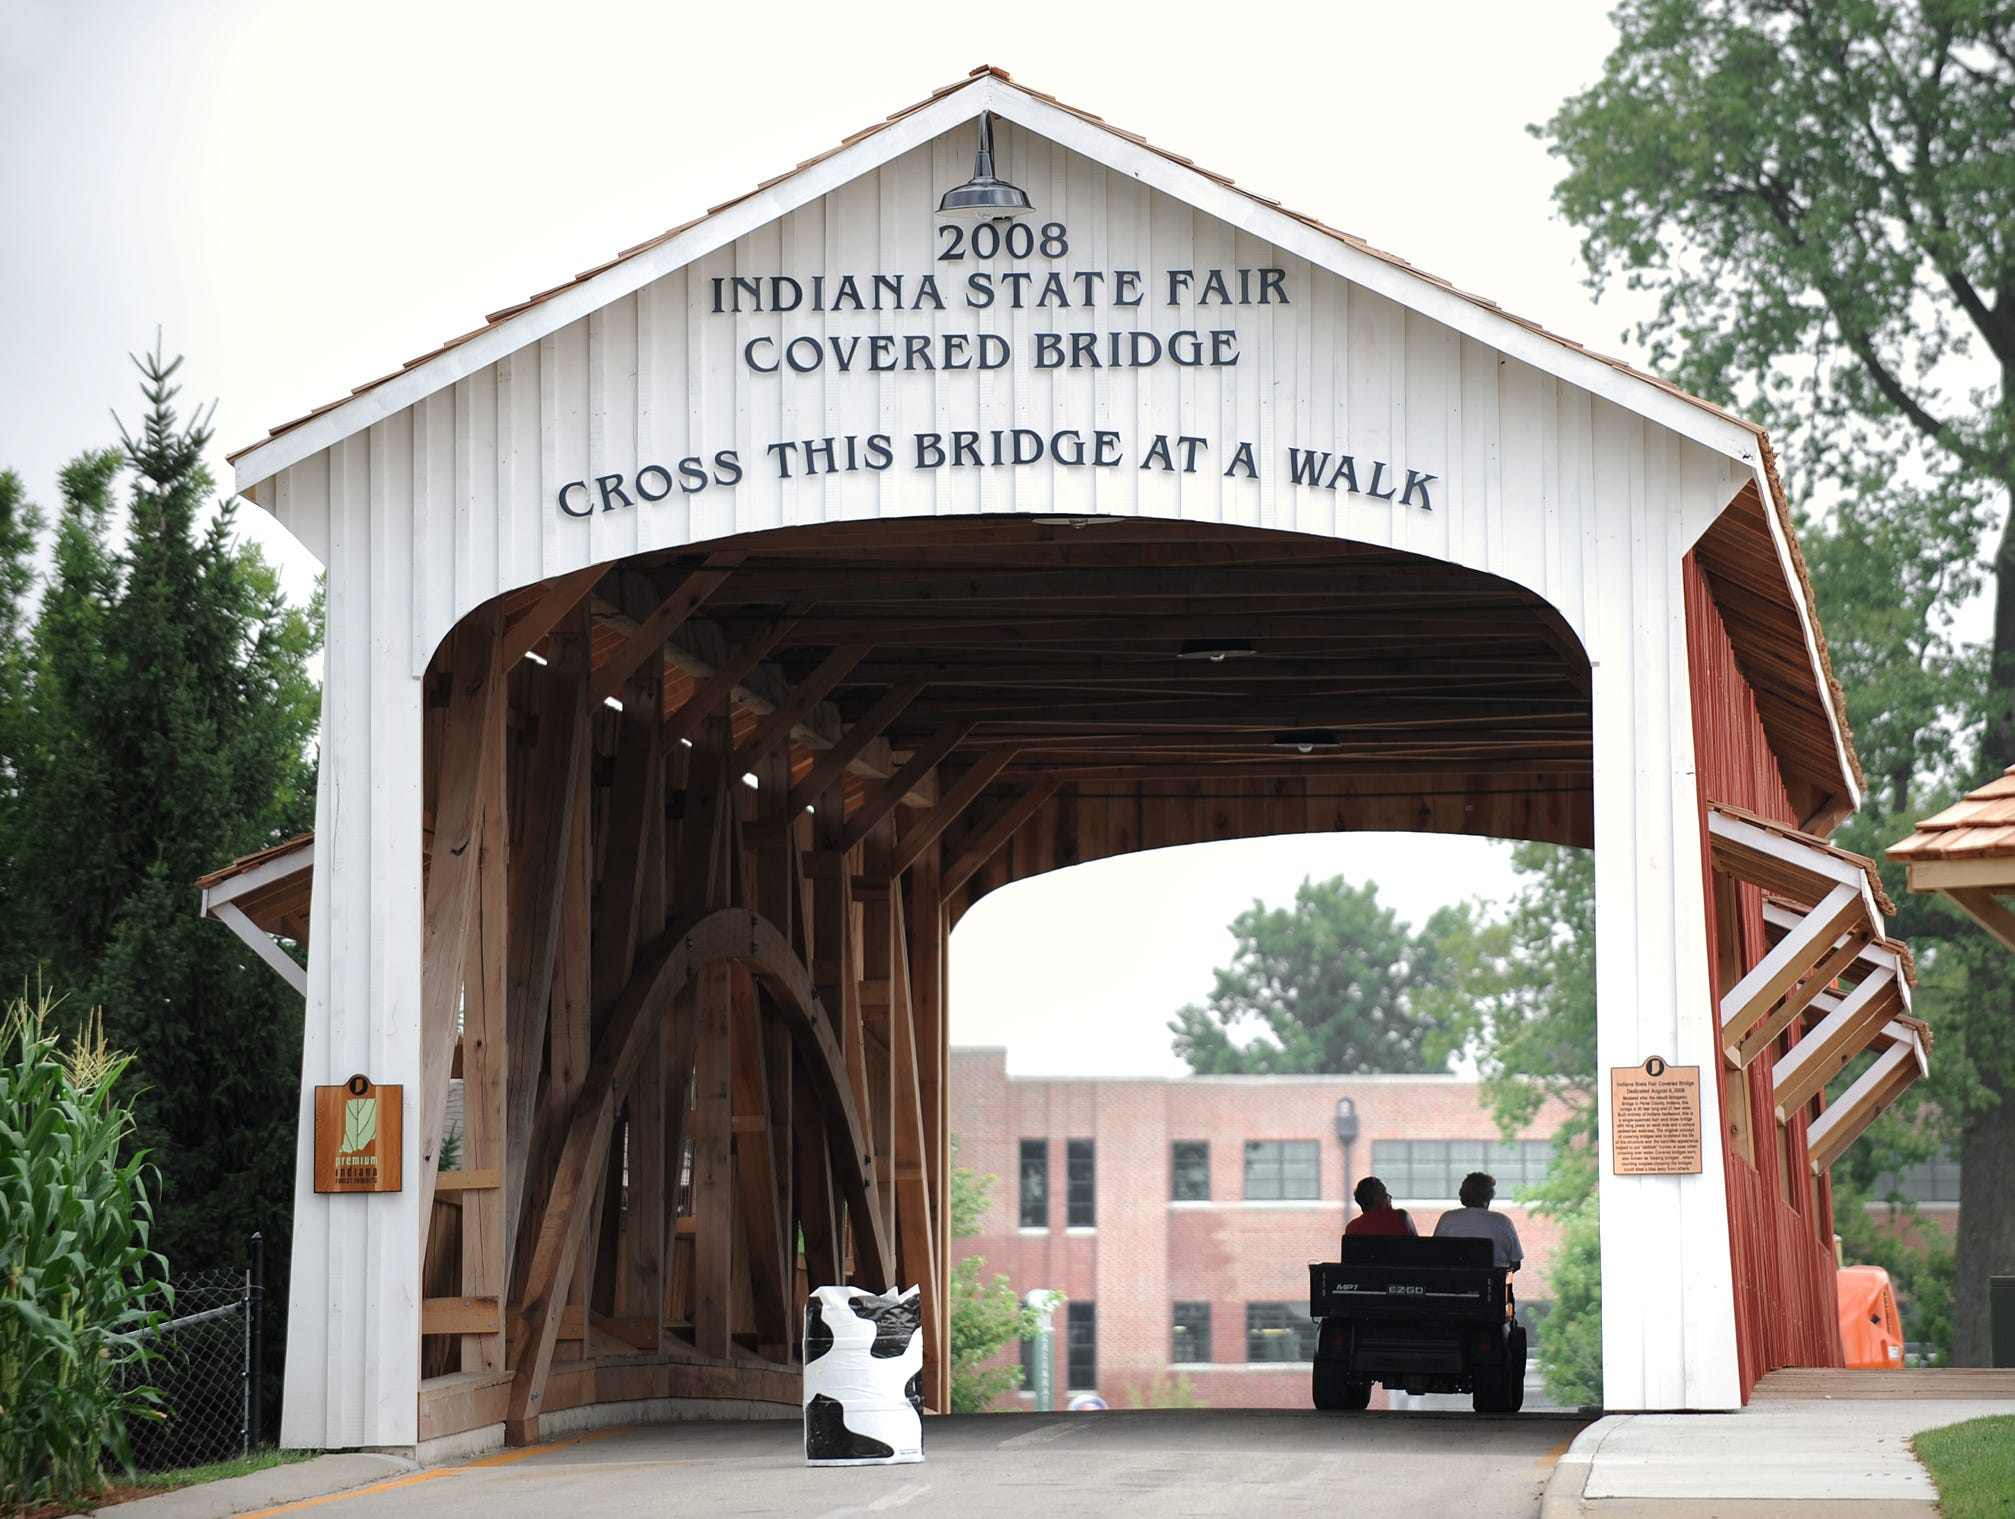 The  Indiana State Fair covered bridge waits for fairgoers at the Indiana State Fairgrounds on Thursday, July 31, 2008